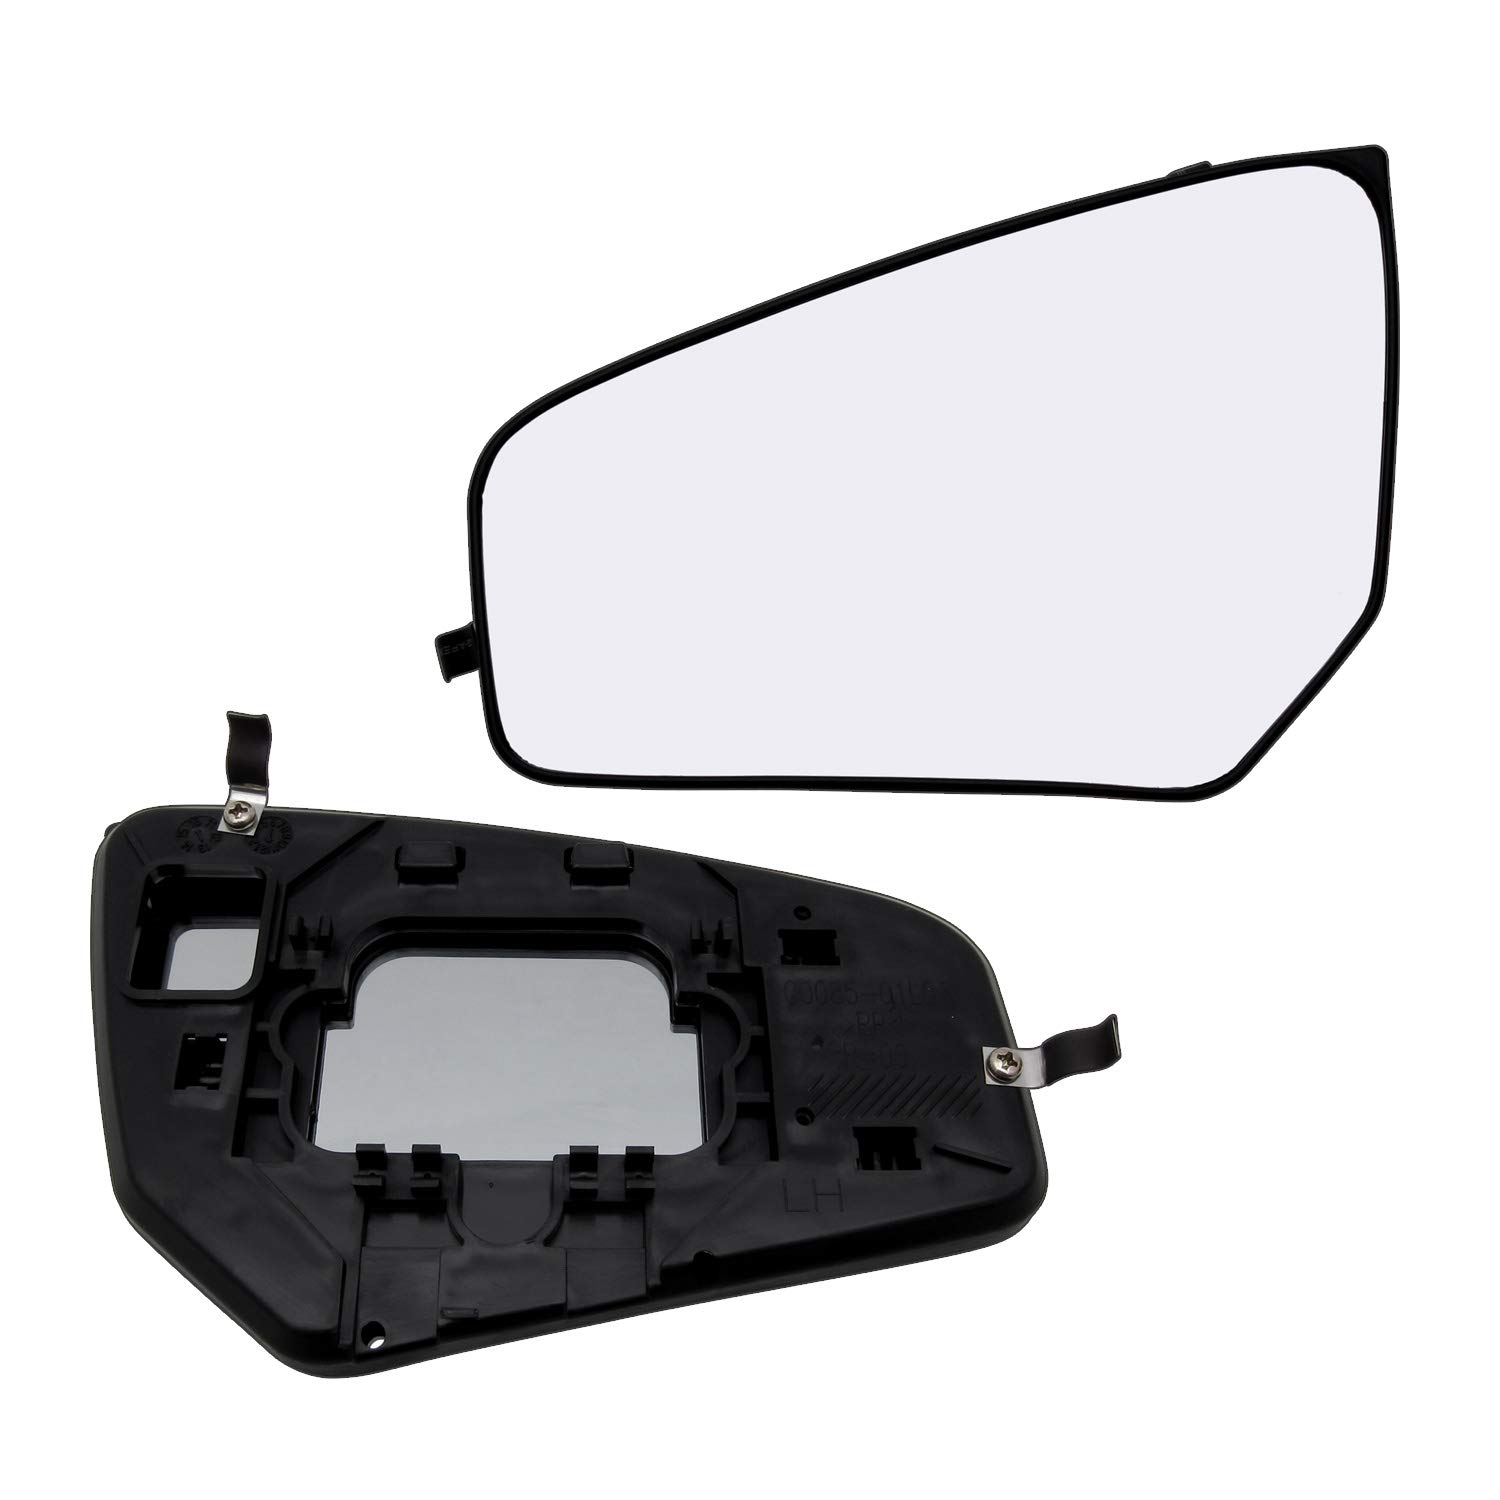 New Replacement Driver Side Mirror Glass W Backing Compatible With 2007-2012 Nissan Sentra Sold By Rugged TUFF